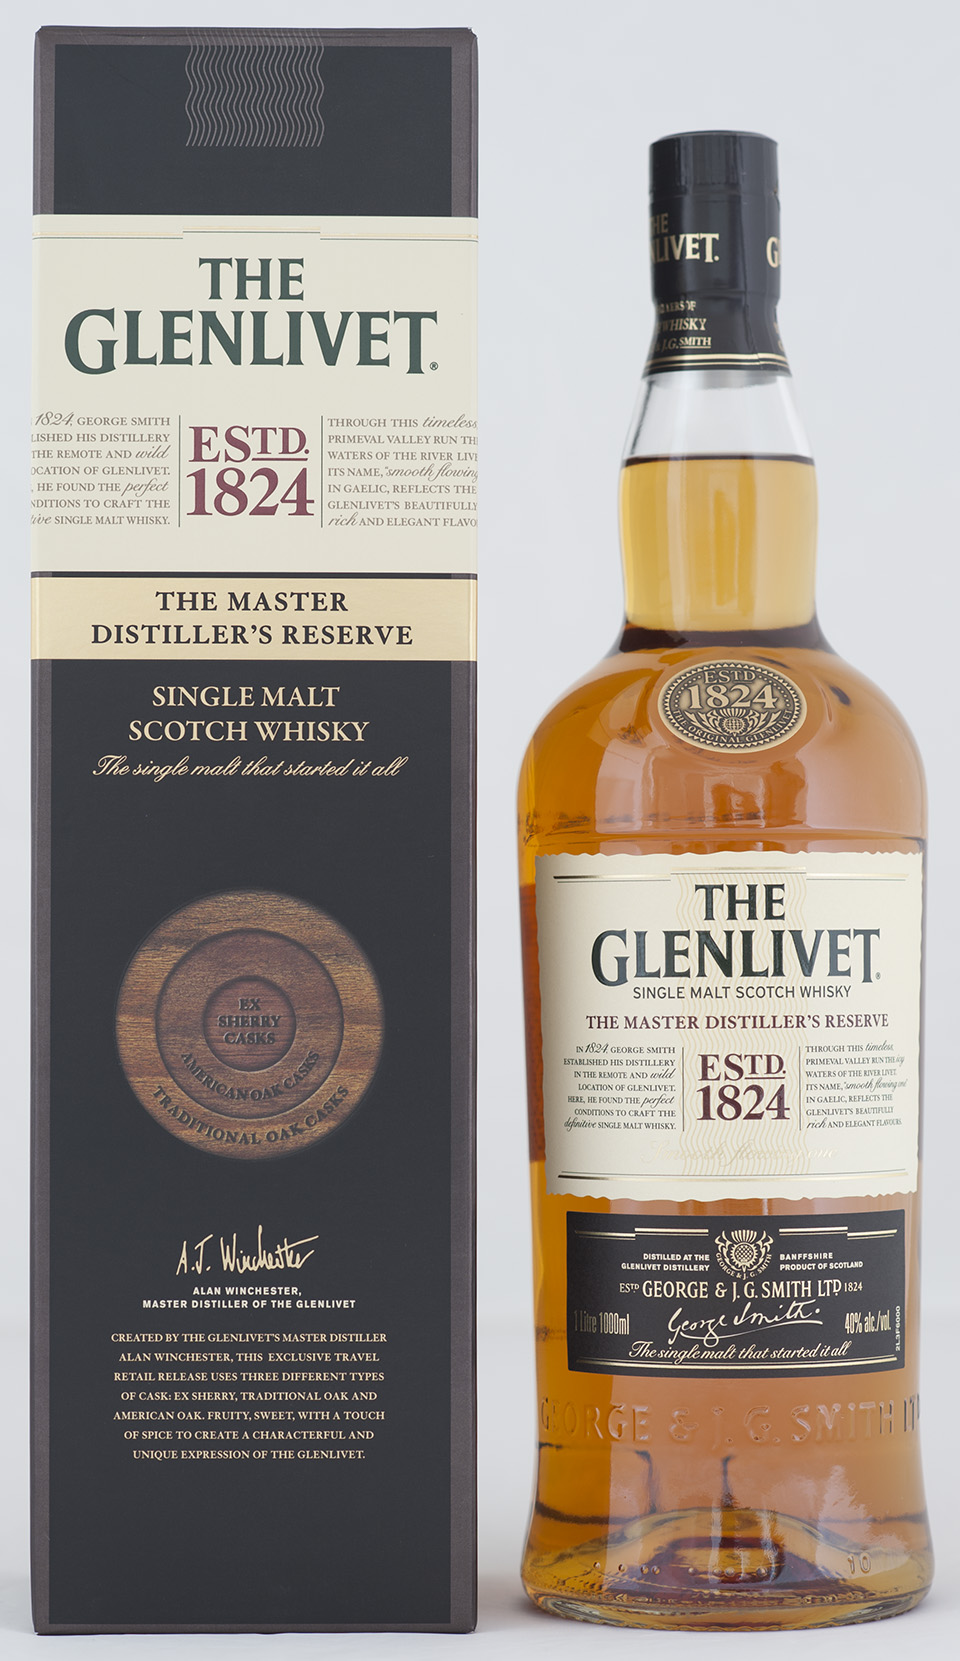 Billede: _DSC5604 The Glenlivet - The Master Distiller's reserve.jpg